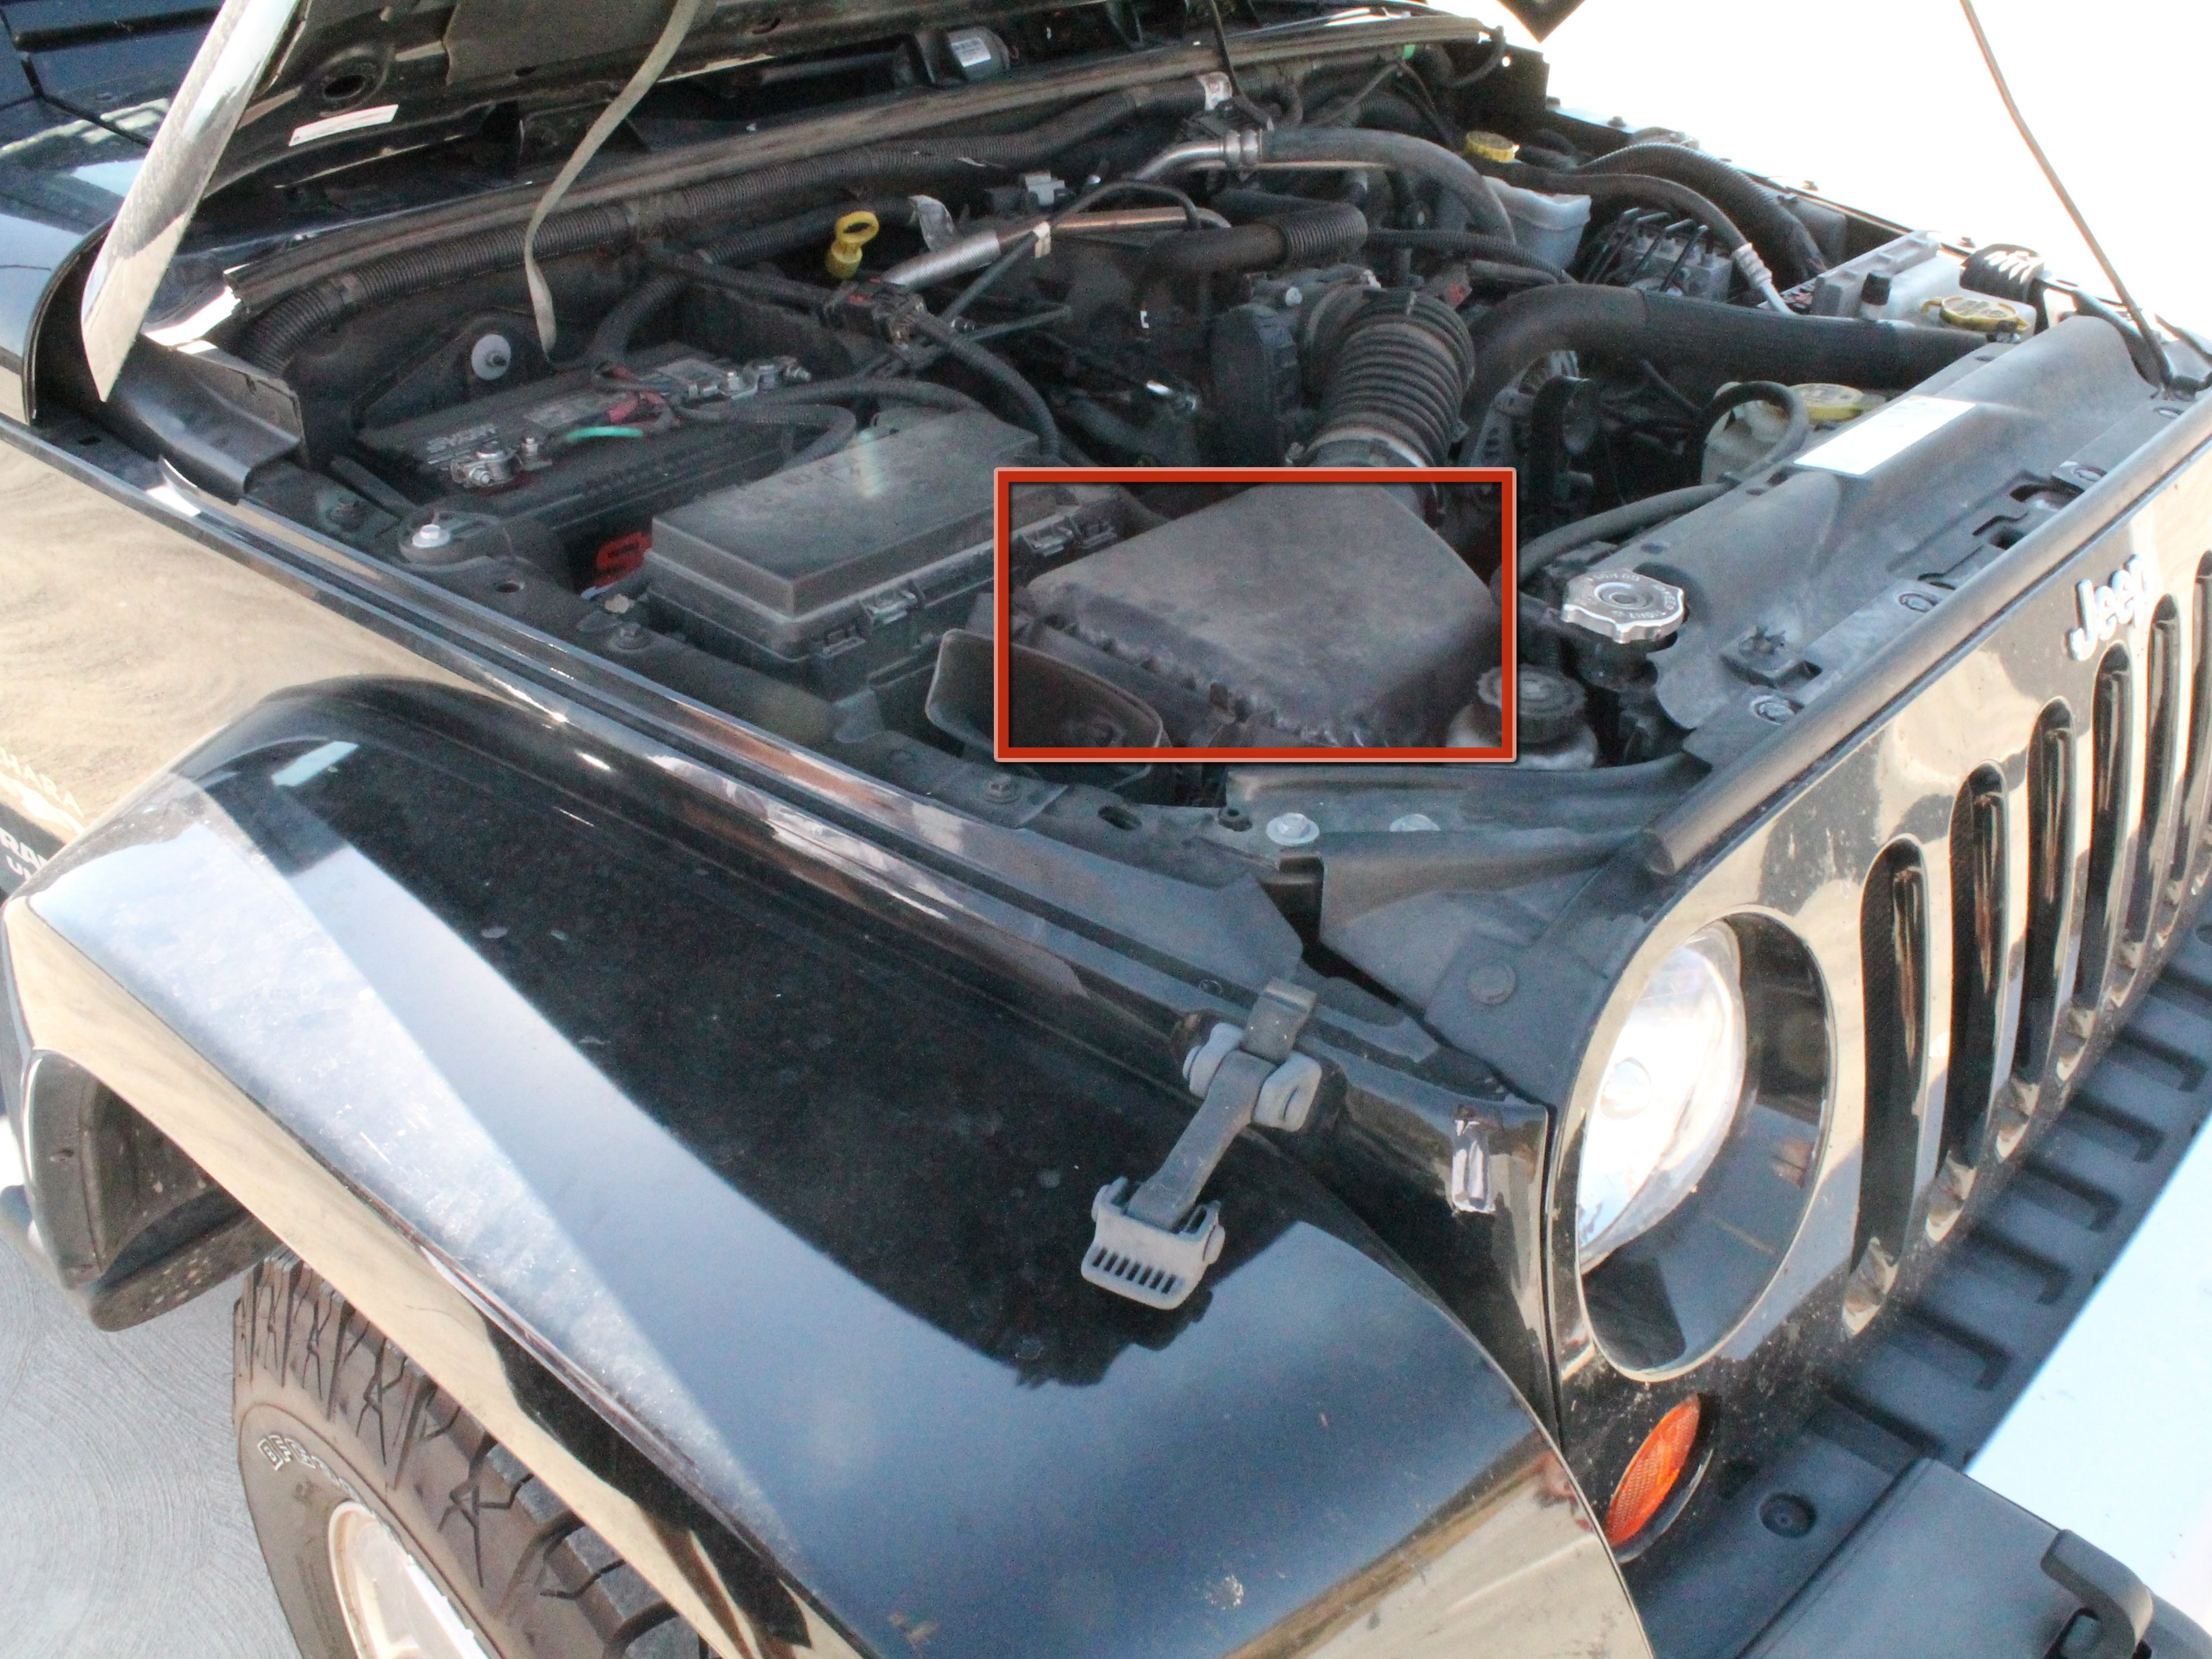 2007-2012 Jeep Wrangler Air Filter Replacement (2007, 2008, 2009, 2010,  2011, 2012) - iFixit Repair Guide